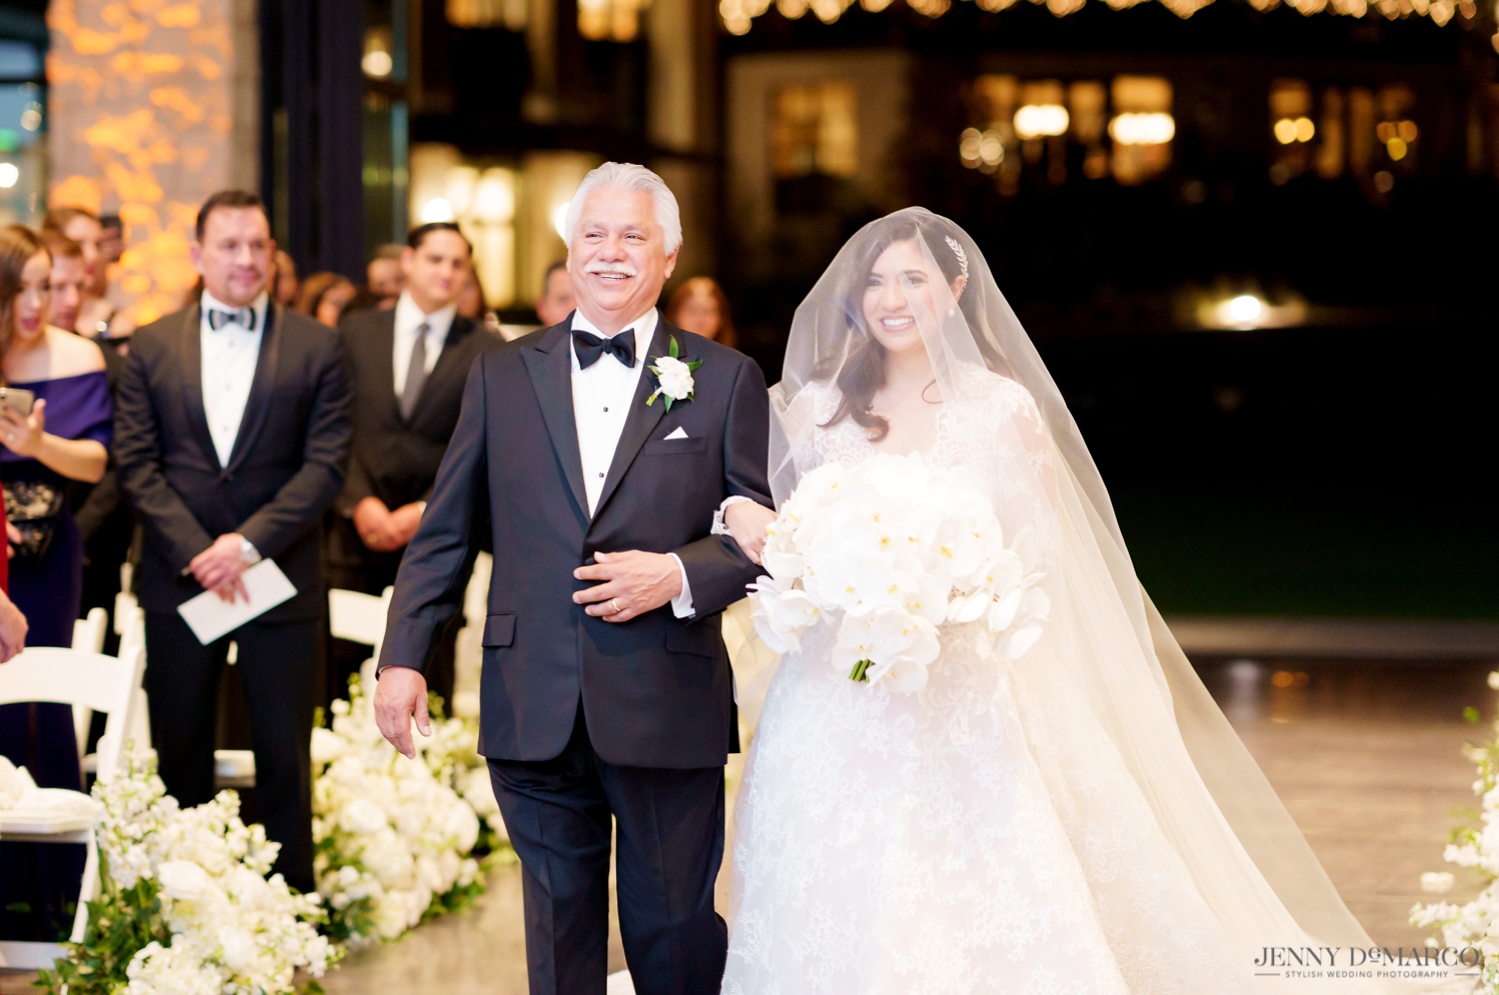 the father of the bride walking his daughter down the aisle